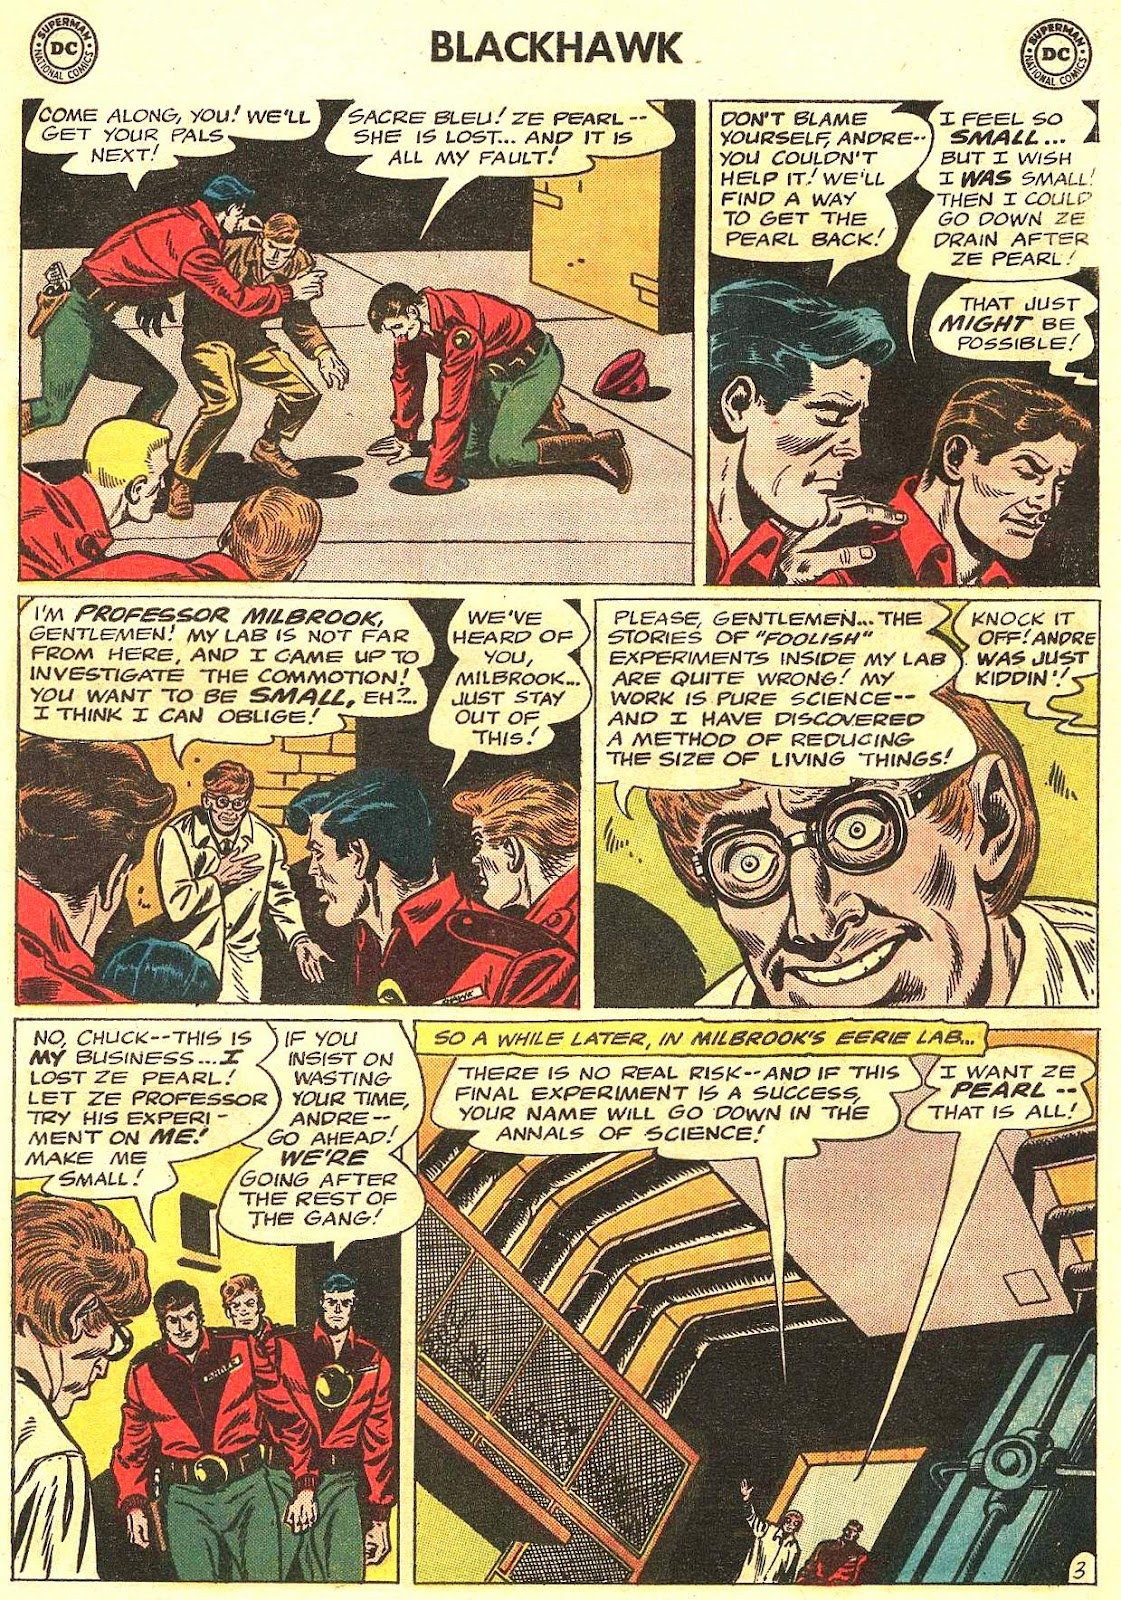 Blackhawk (1957) Issue #201 #94 - English 6